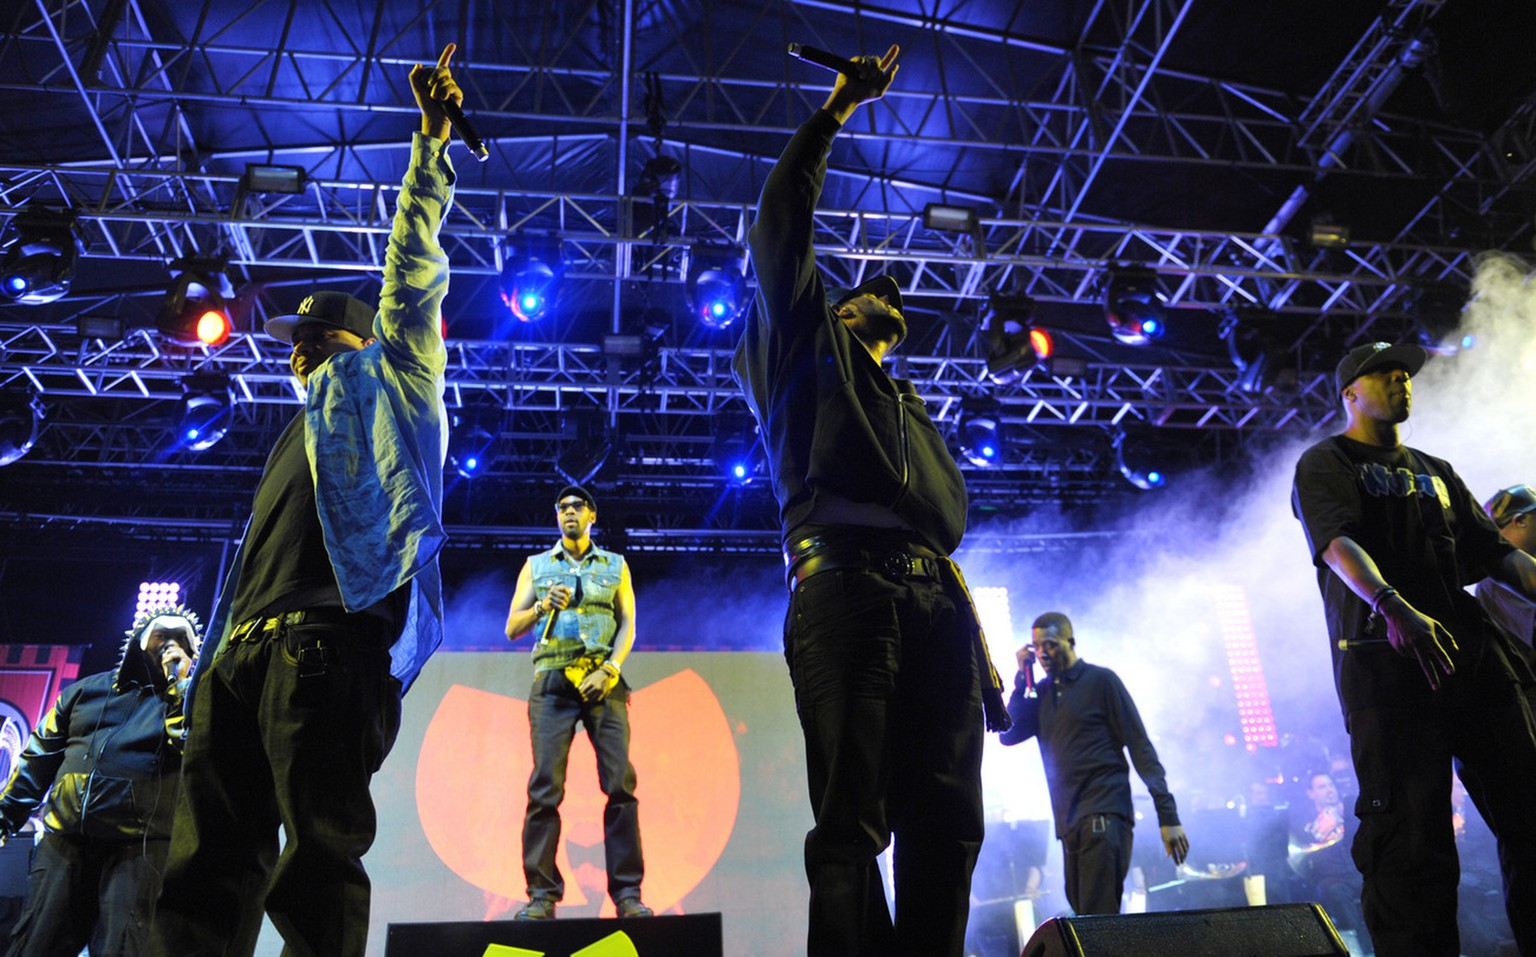 Members of the Wu-Tang Clan perform at the second weekend of the 2013 Coachella Valley Music and Arts Festival at the Empire Polo Club on Sunday, April 21, 2013 in Indio, Calif. . (Photo by John Shearer/Invision/AP)